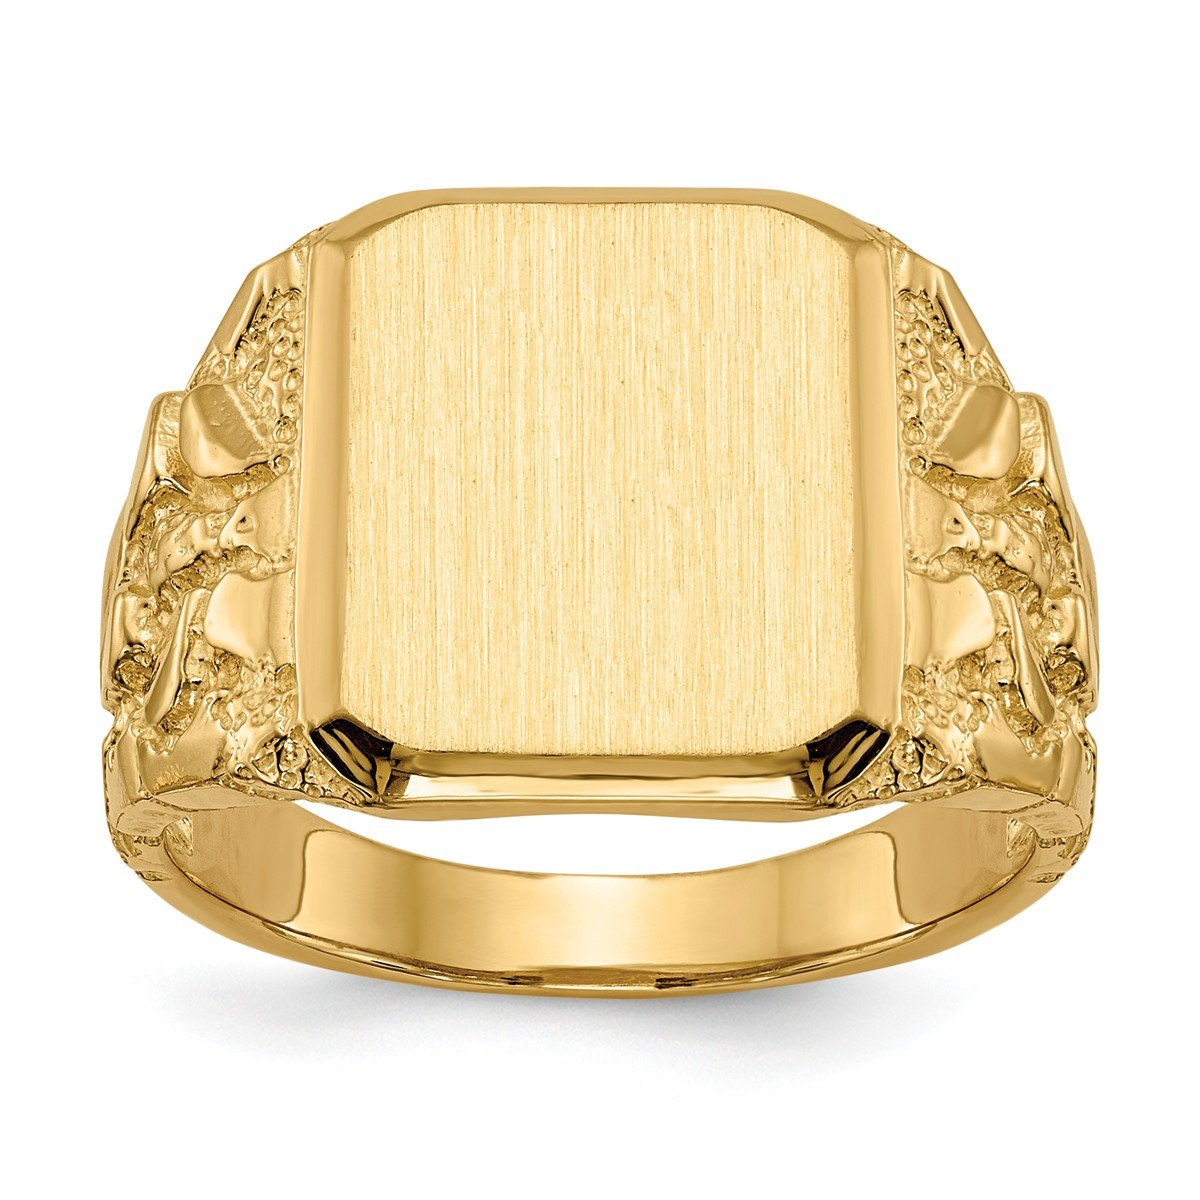 Roy Rose Jewelry 14K Yellow Gold Open Back Mens Nugget Sides Square Top Signet Ring Custom Personailzed with Free Engraving Available Initial or Monogram ~ Size 10